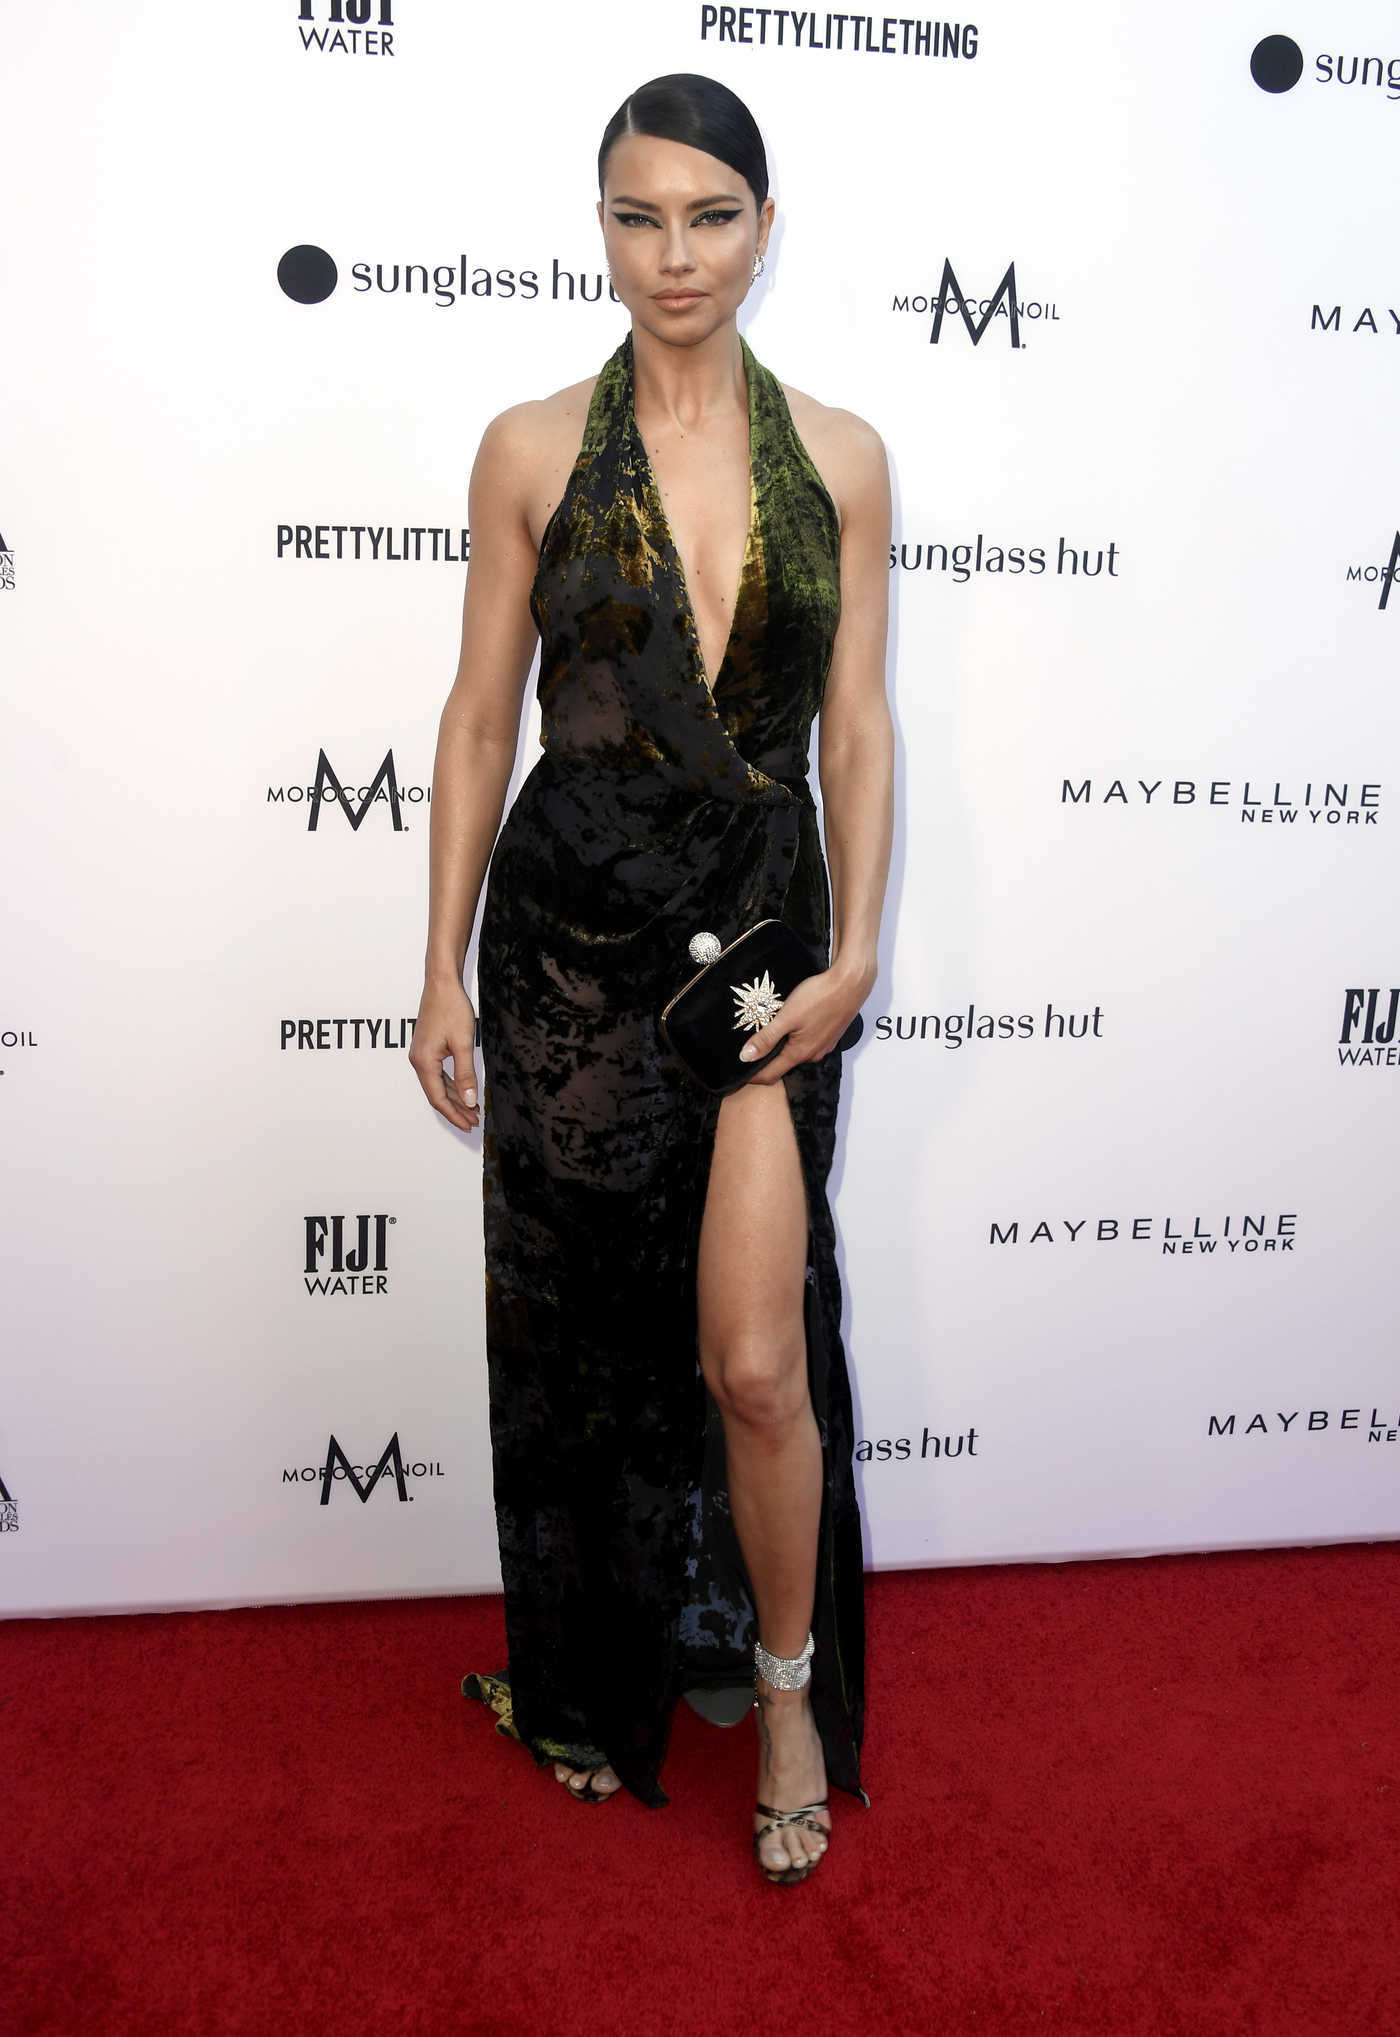 Adriana Lima Attends The Daily Front Row Fashion Awards at The Beverly Hills Hotel in Los Angeles 03/17/2019